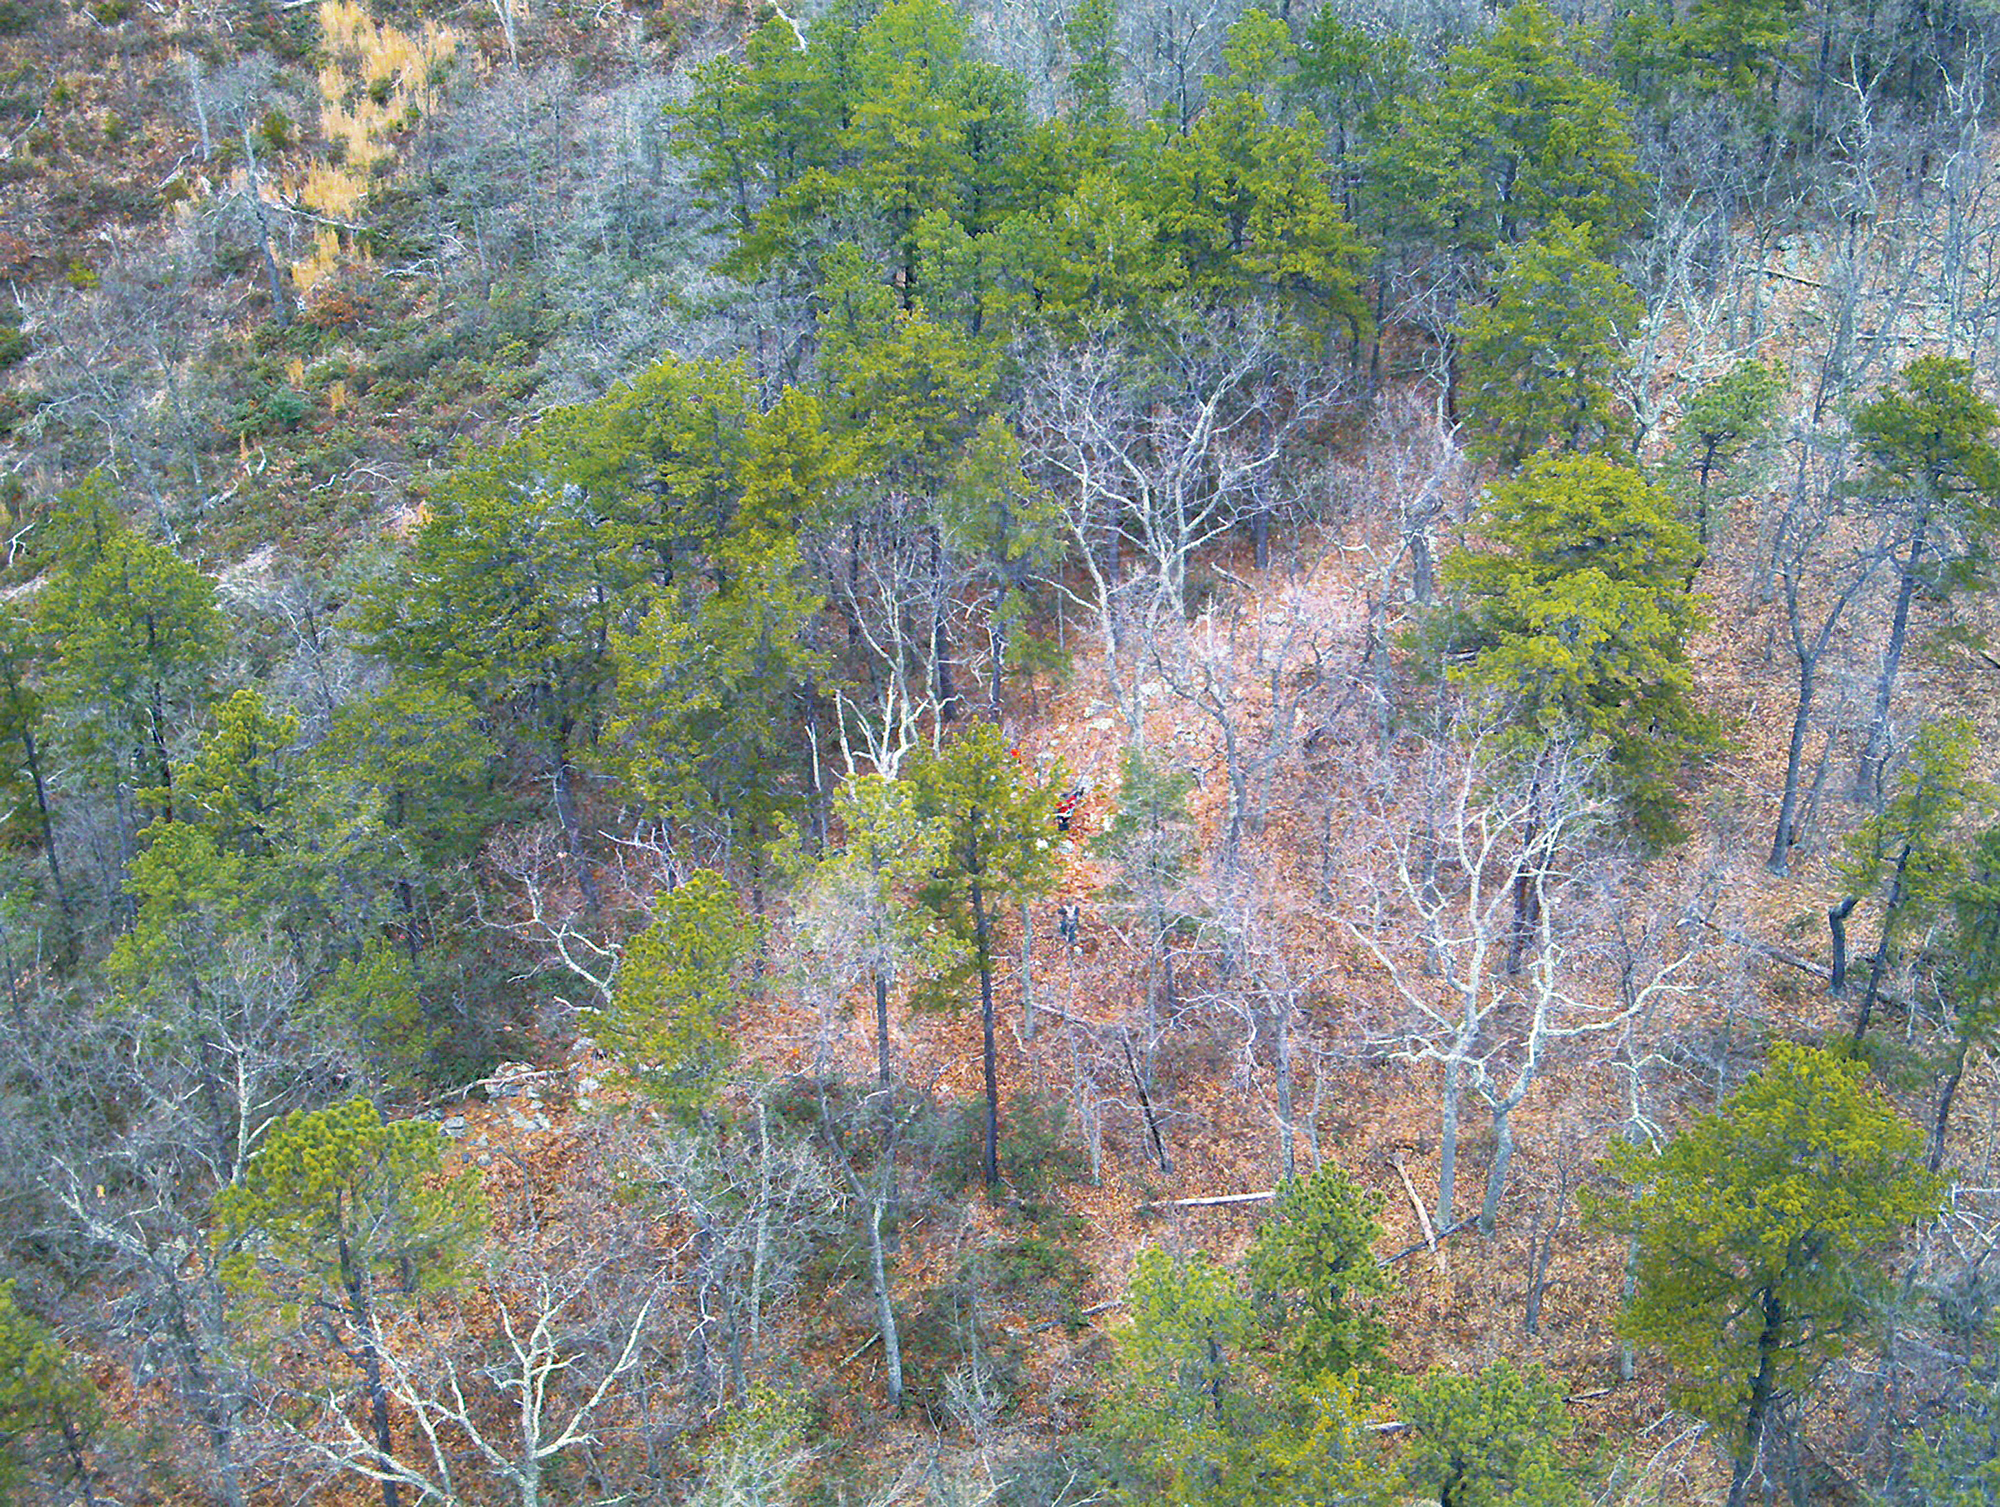 McDonnell spent a frigid night in the forest before the search-and-rescue drone from the Loudoun County Sheriff's Office—flying its first mission—found him. Here, an image from the operation. Photograph courtesy of Loudoun County Sheriff's Office.